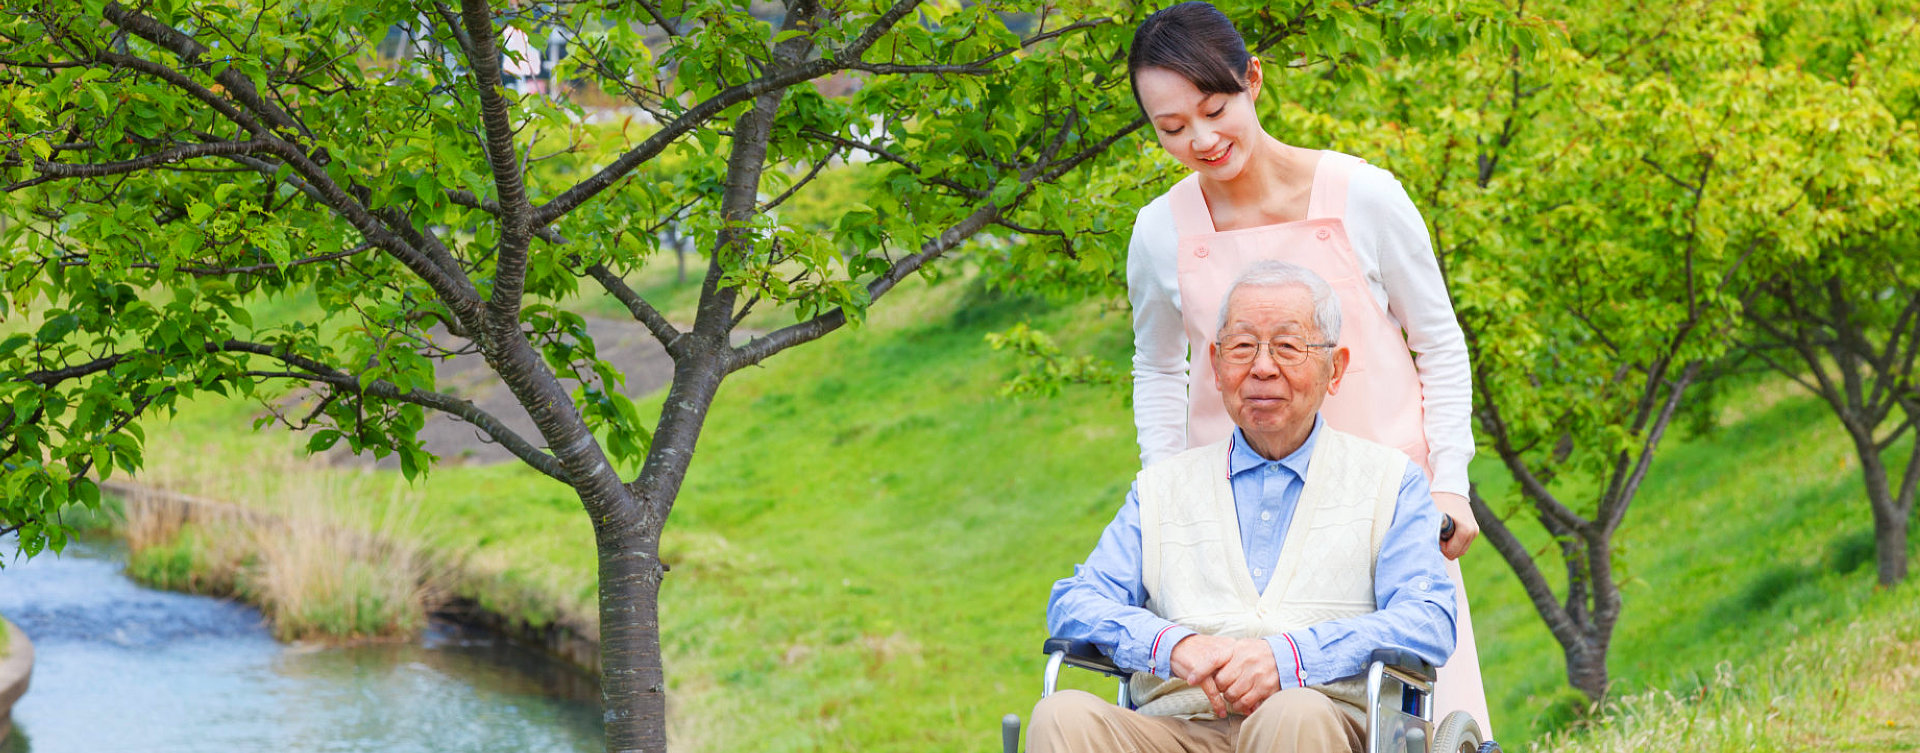 caregiver assisting elder man outdoor